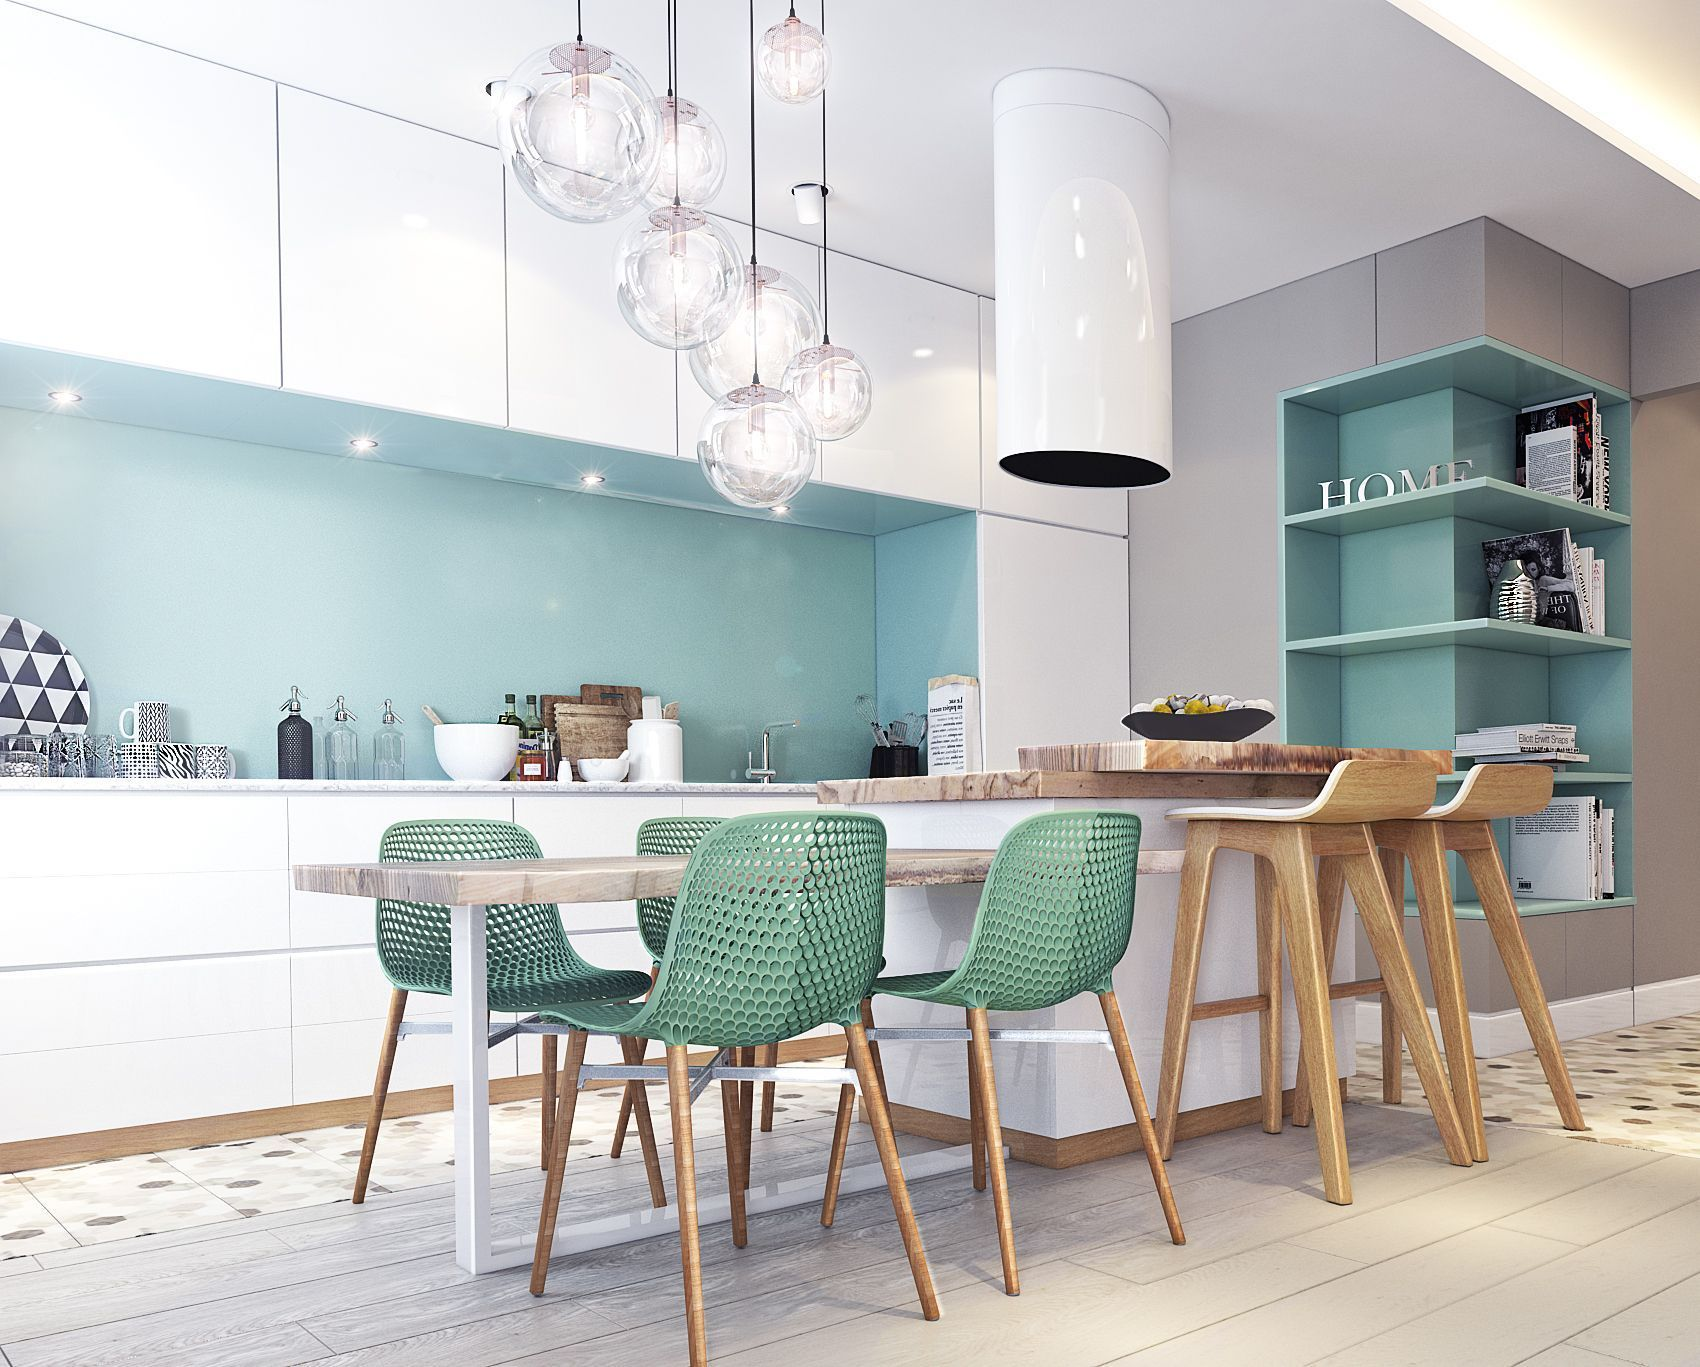 50 Modern Dining Room Wall Decor Ideas And Designs 2018 Farmhouse Dining Room Kitchen Wall Decor Dinn Best Kitchen Designs Modern Kitchen Design Tuscan Kitchen